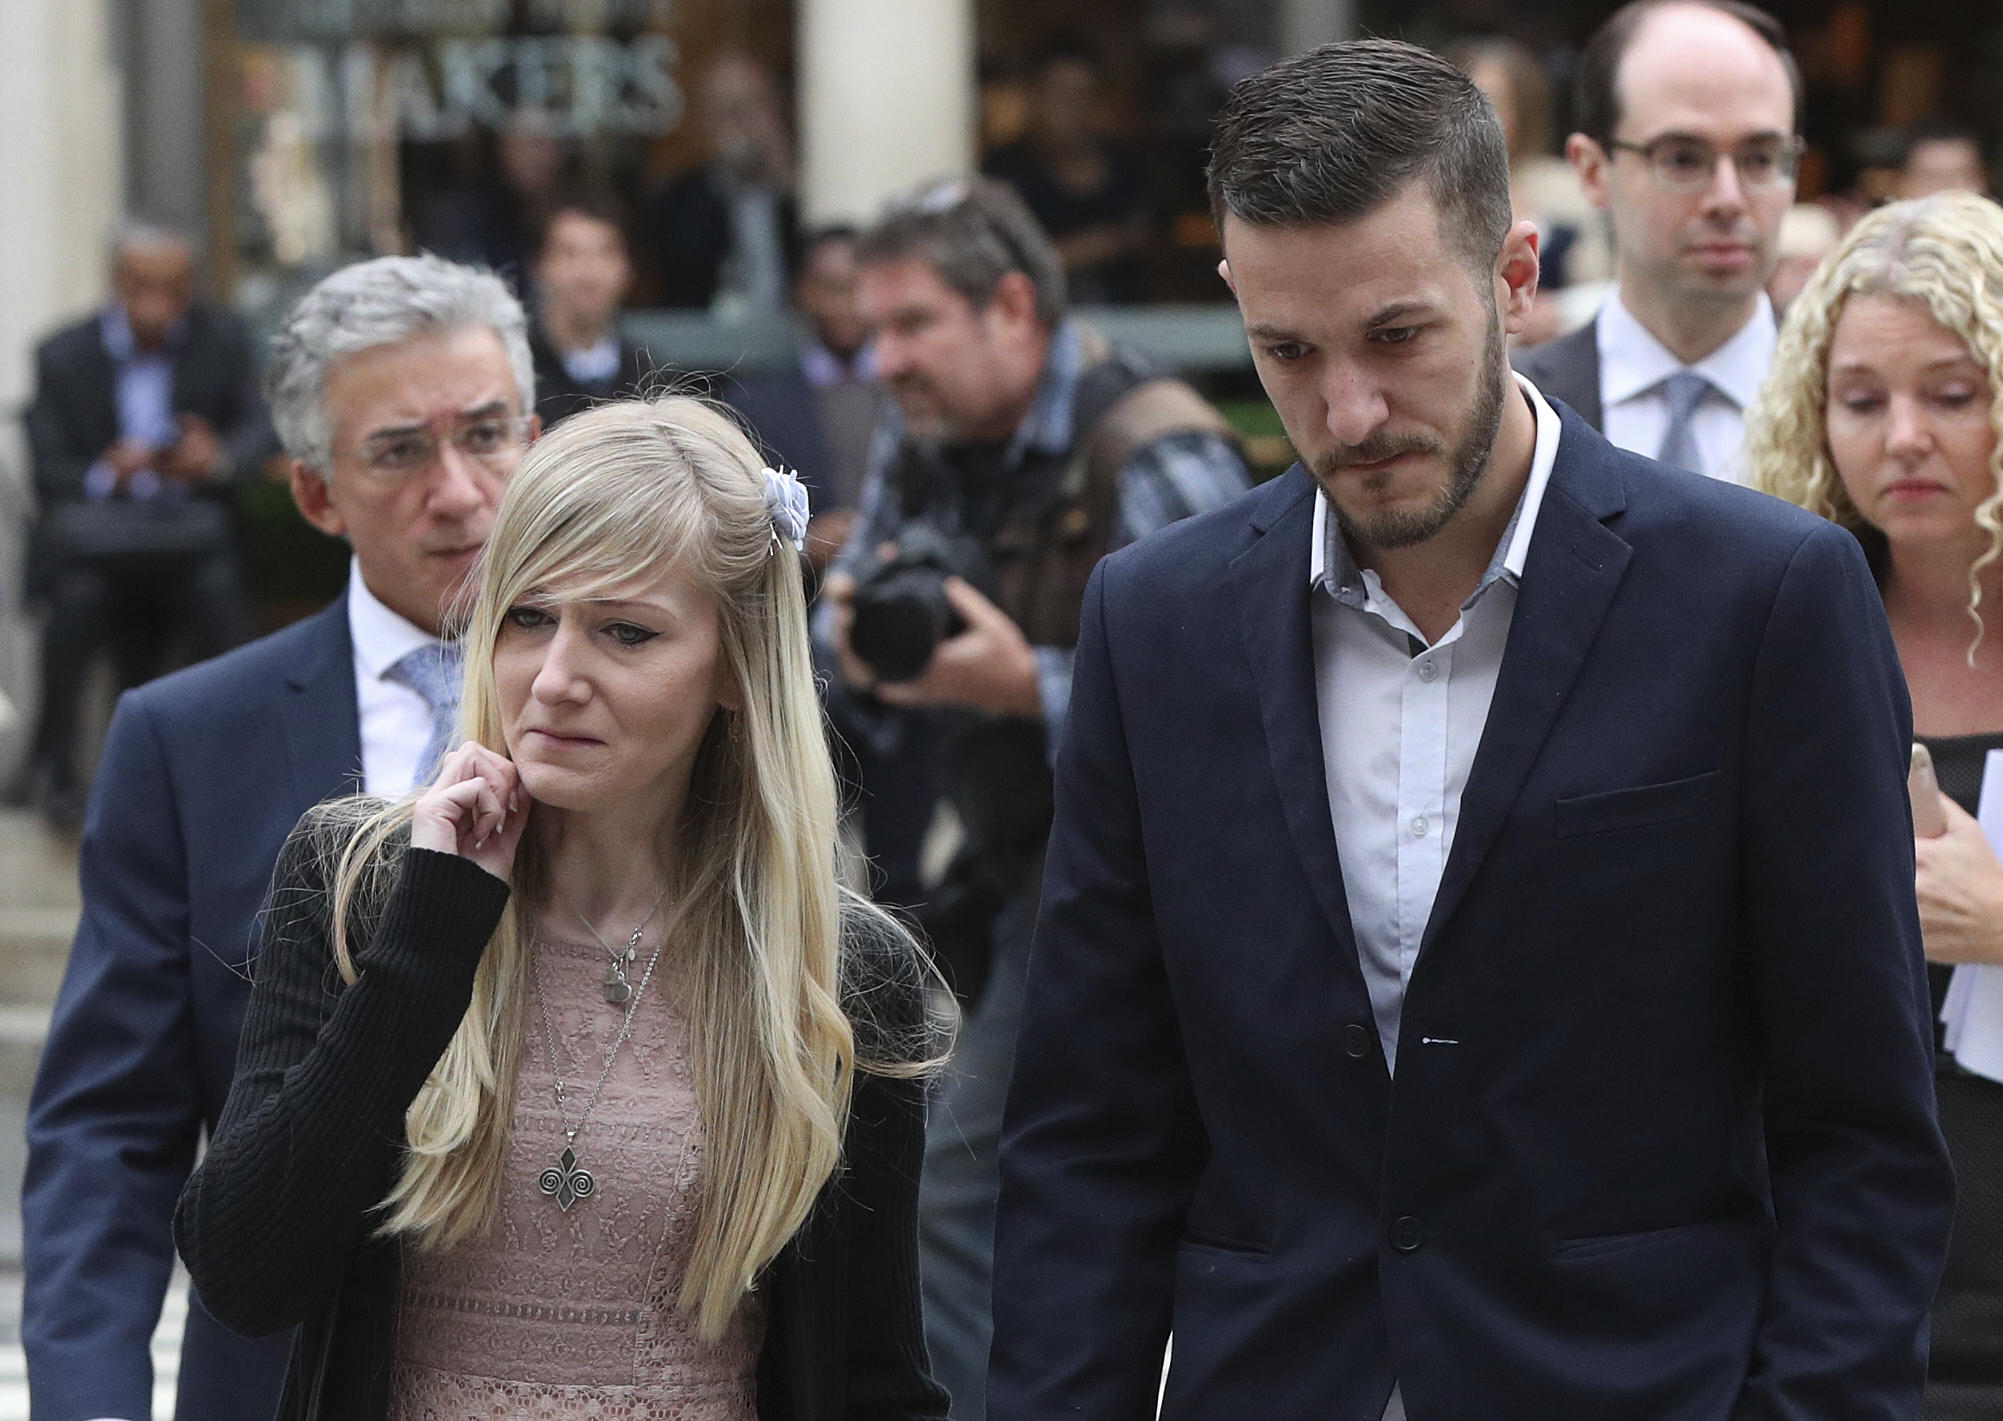 Death threats over Charlie Gard case